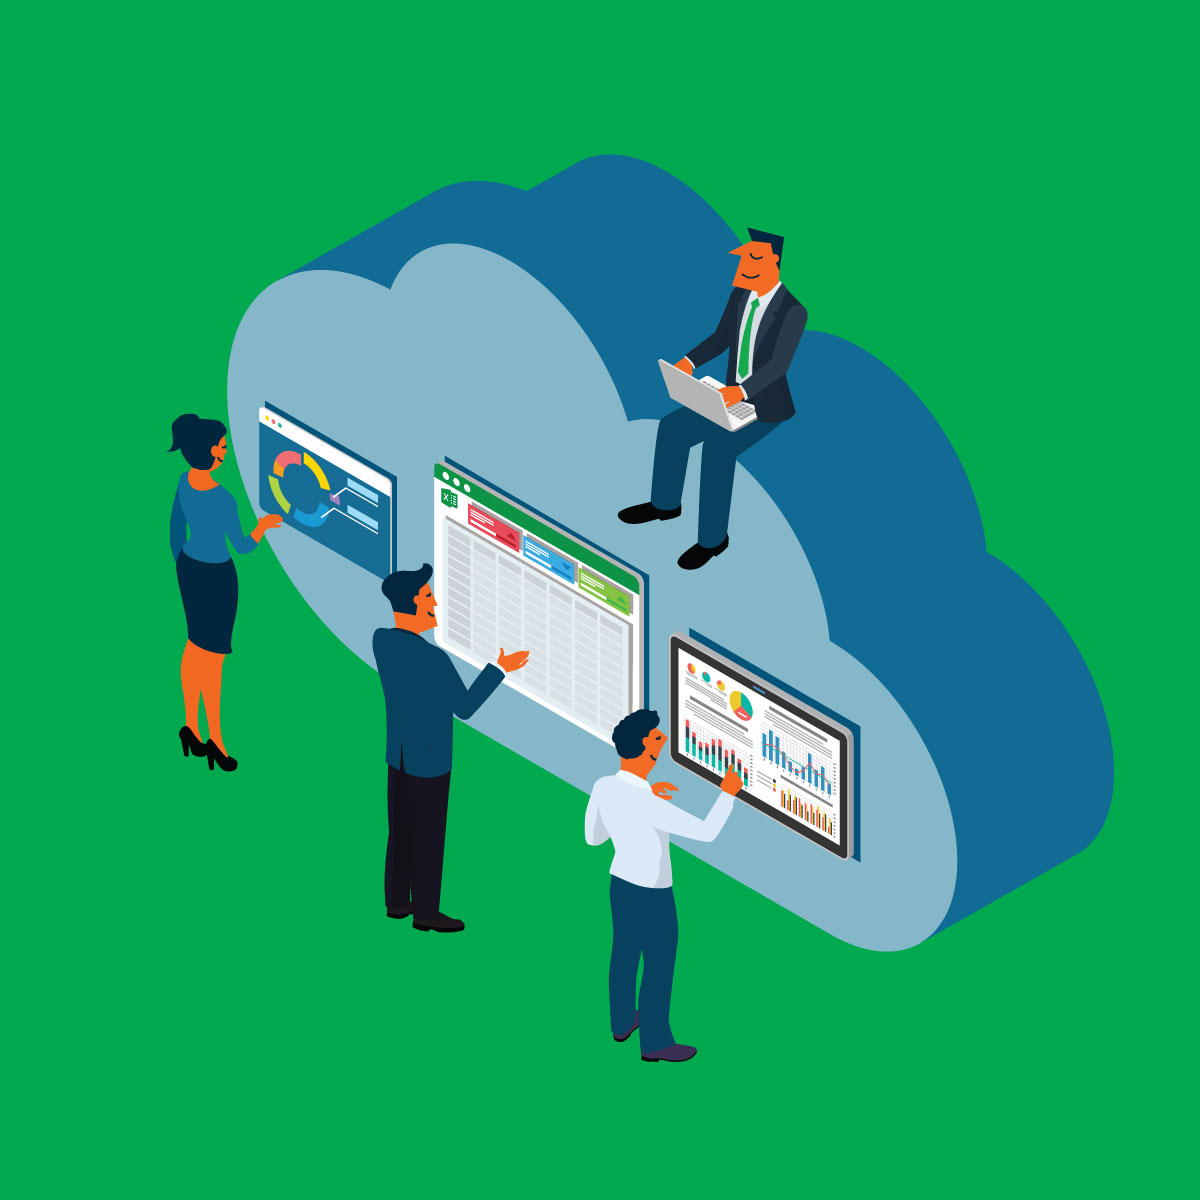 Rolling Forecasts: The Advance of Cloud Technologies